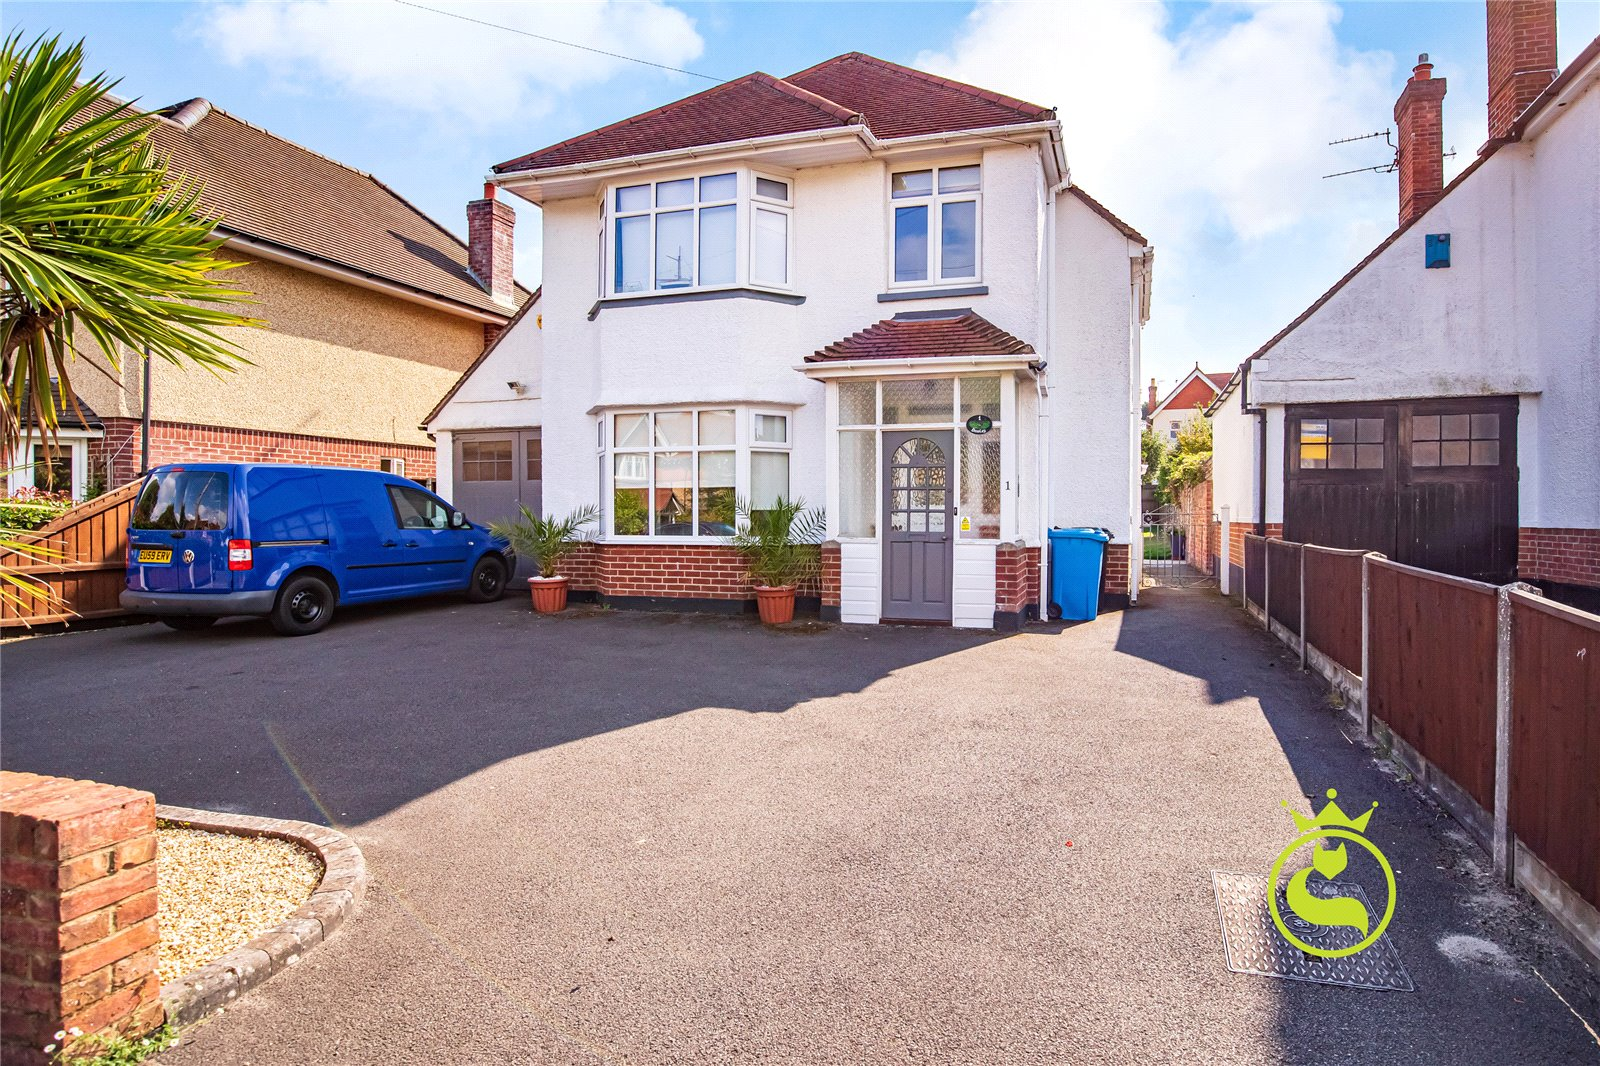 4 bed house to rent in Torbay Road, Poole, BH14